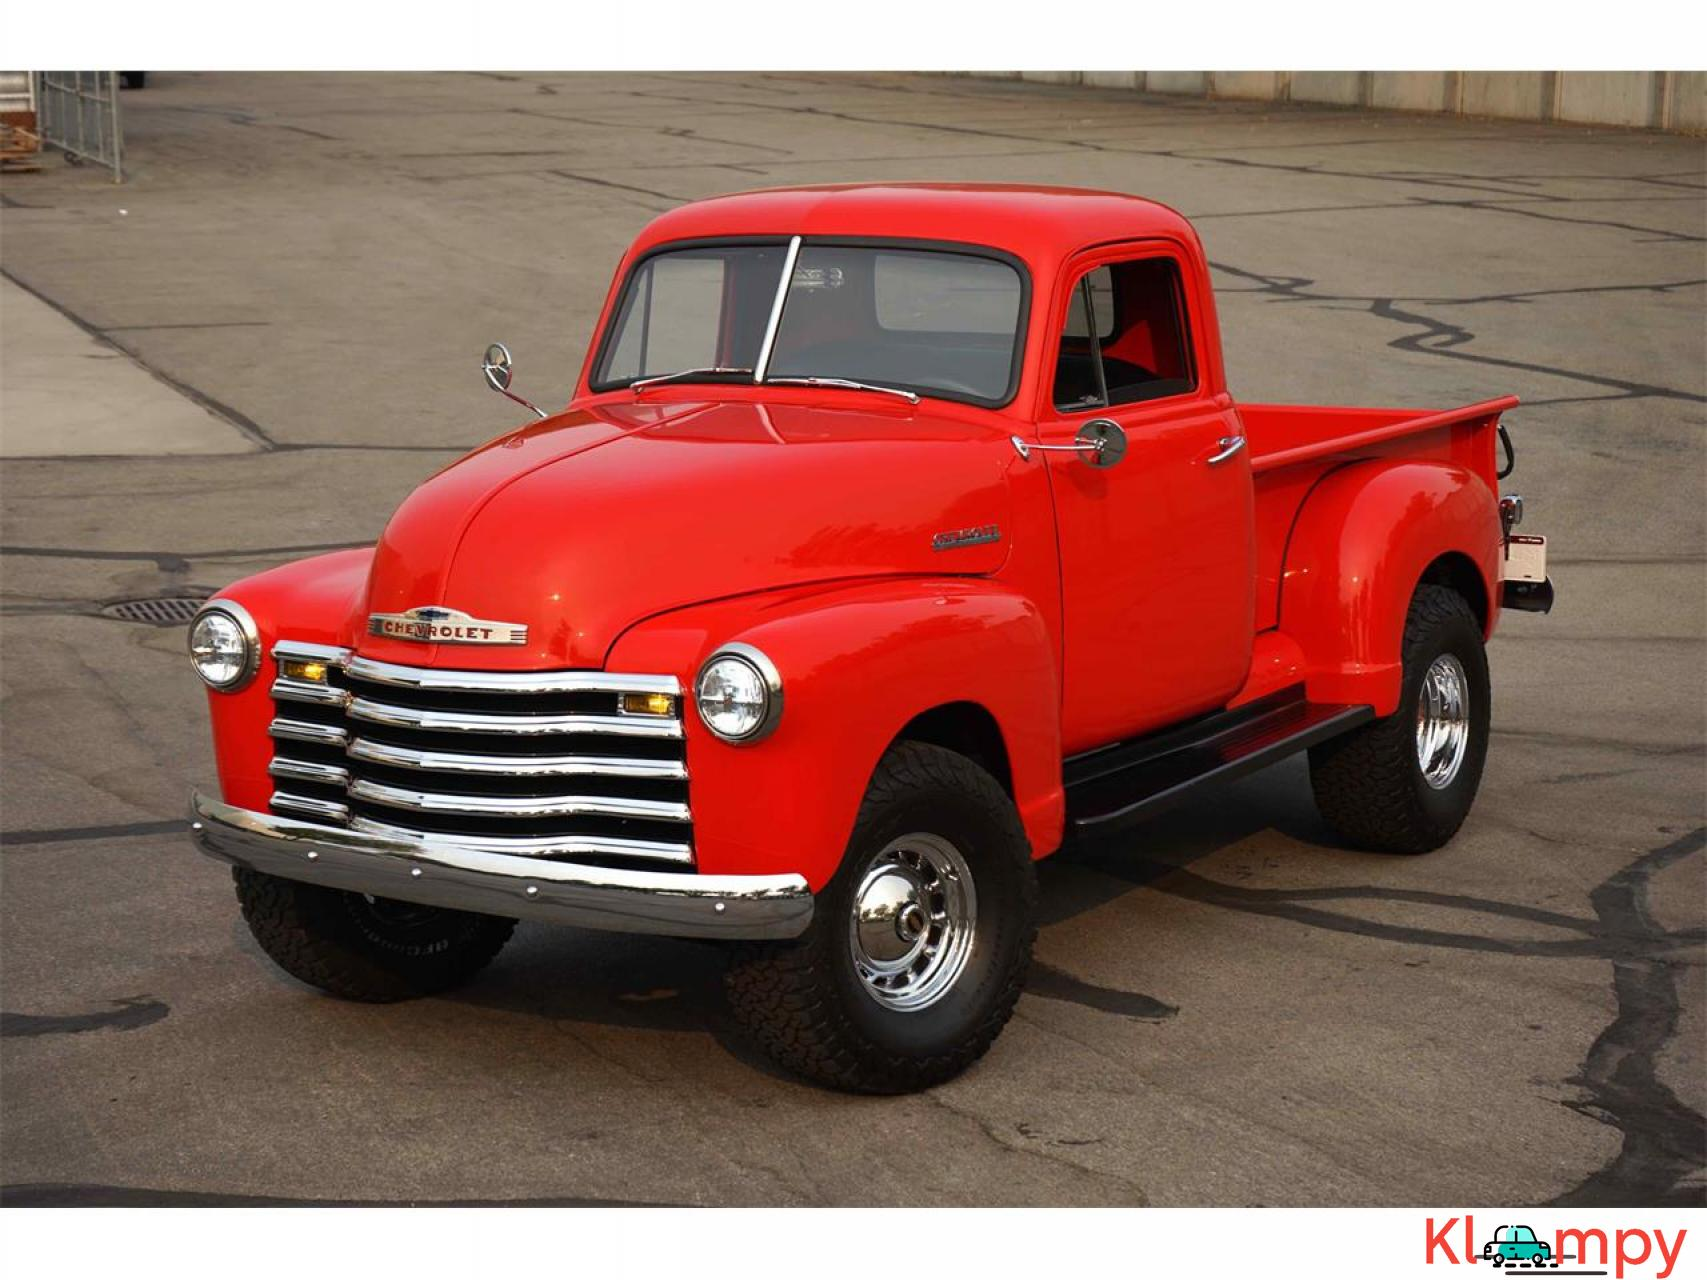 1951 Chevrolet 3100 350 V8 with a B&M Supercharger - 2/17